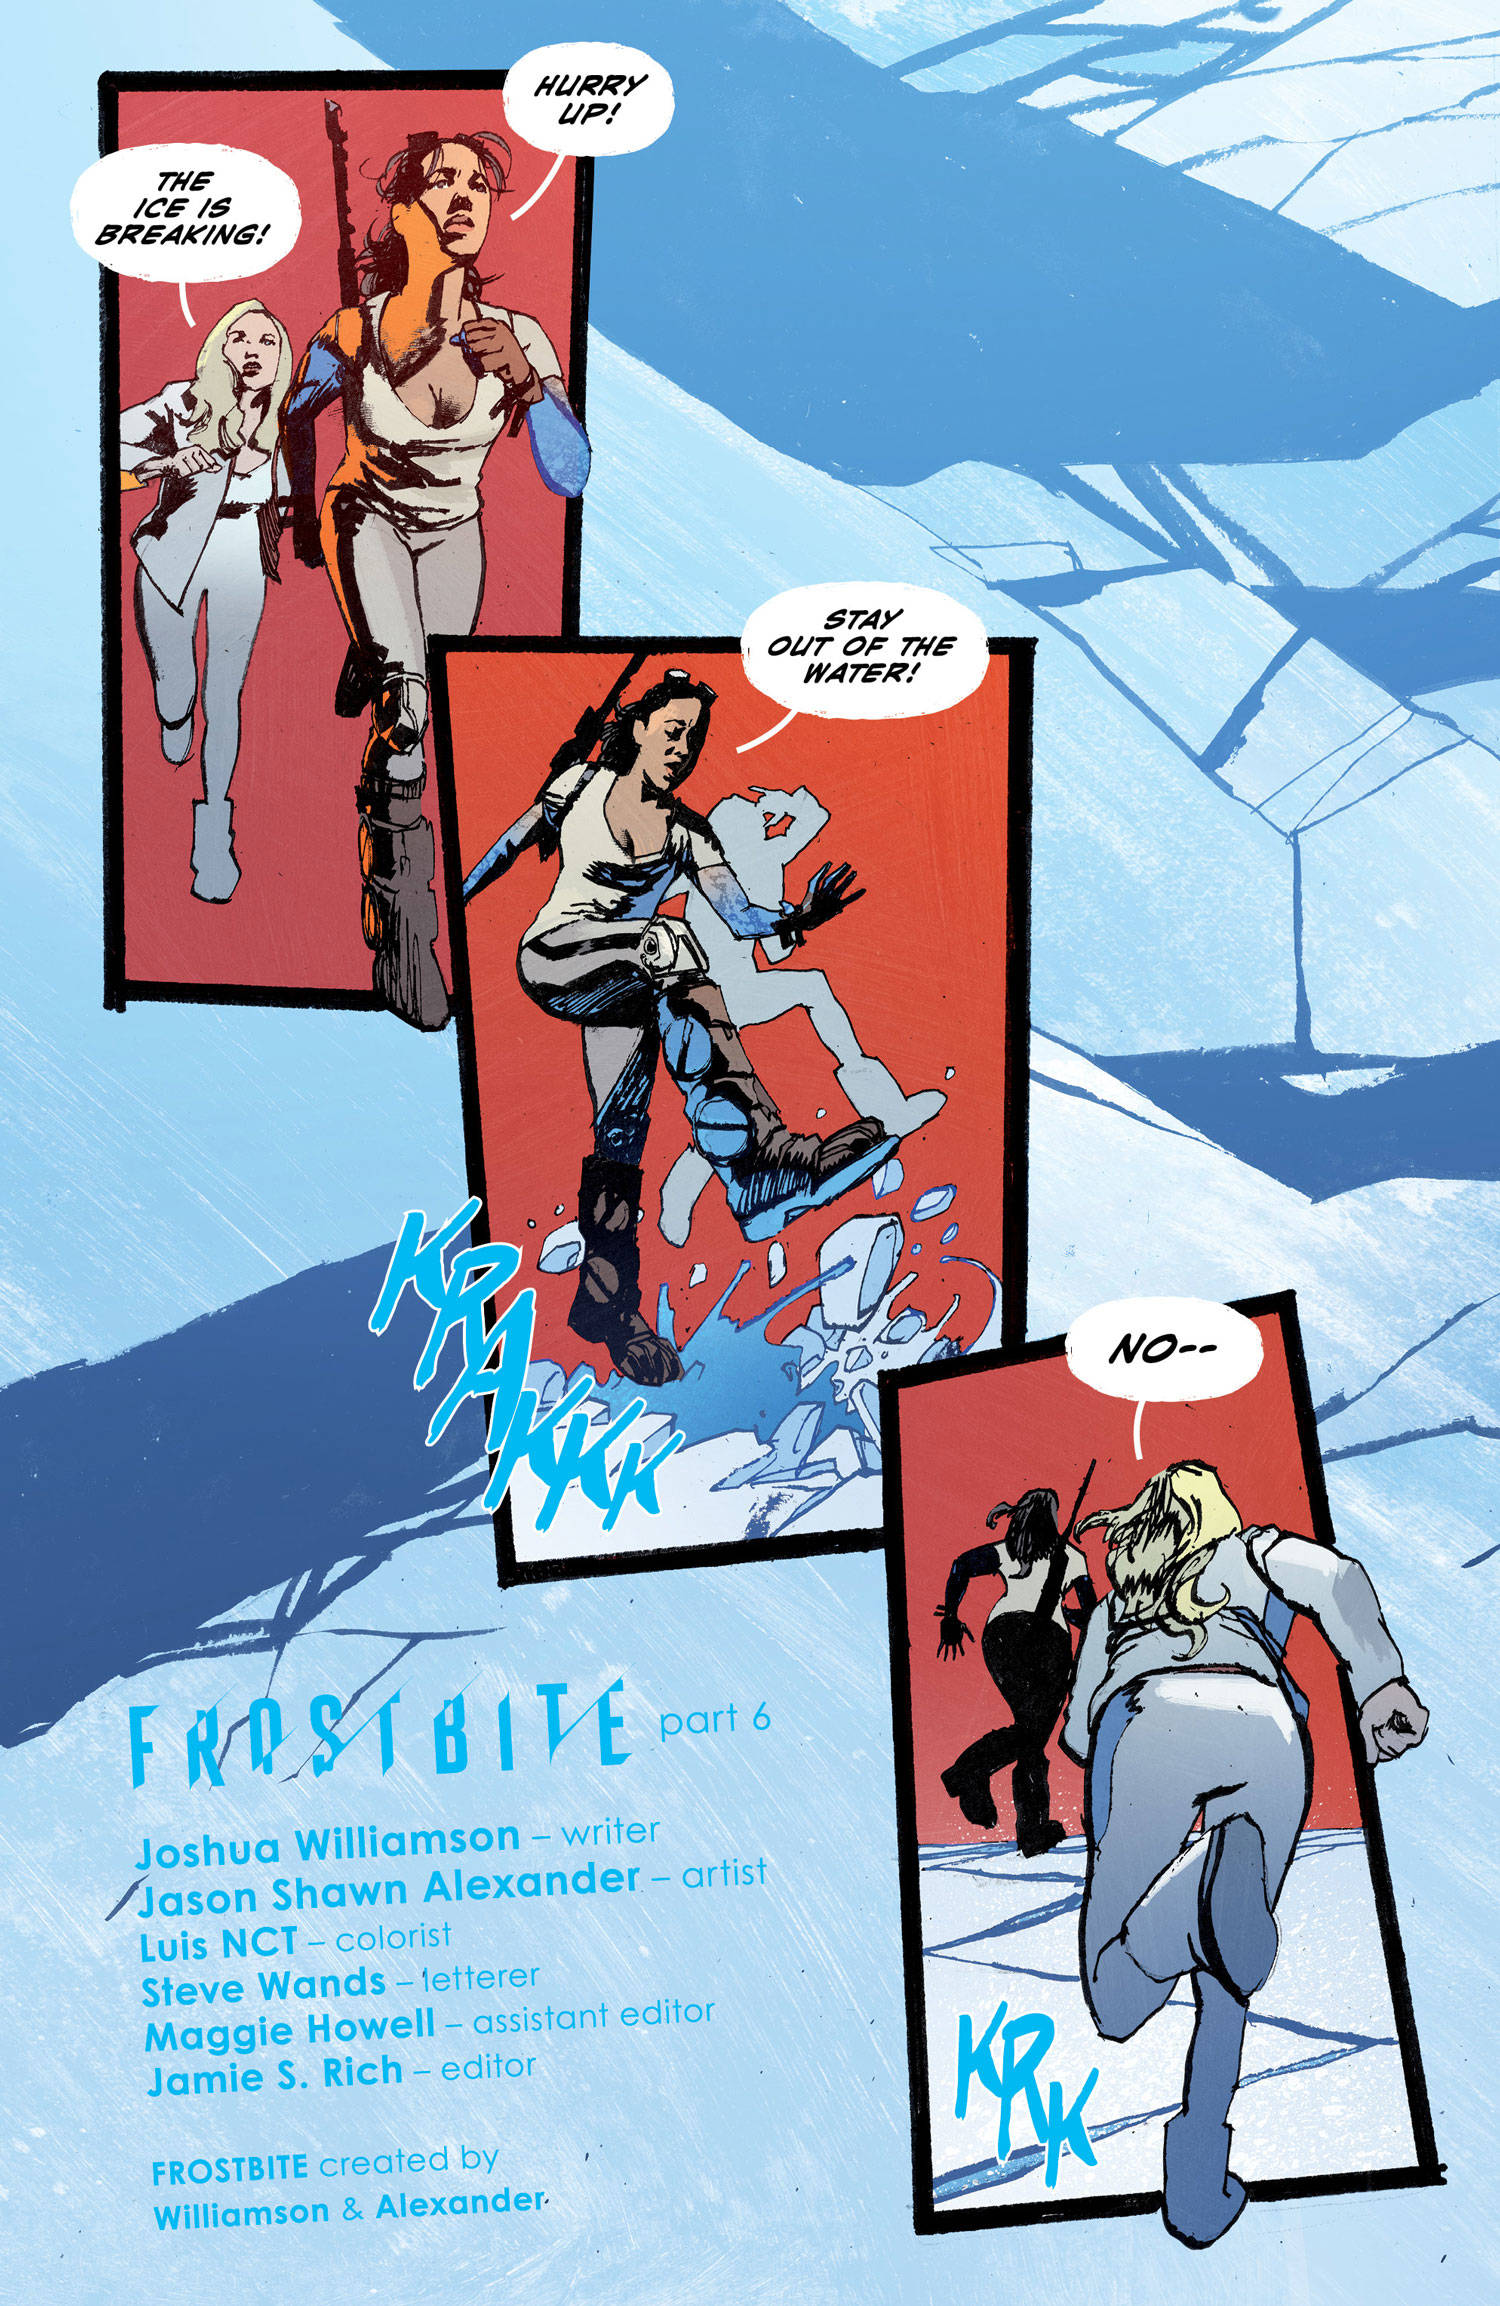 Exclusive Interview: Joshua Williamson Discusses Frostbite And Ideas For A Sequel